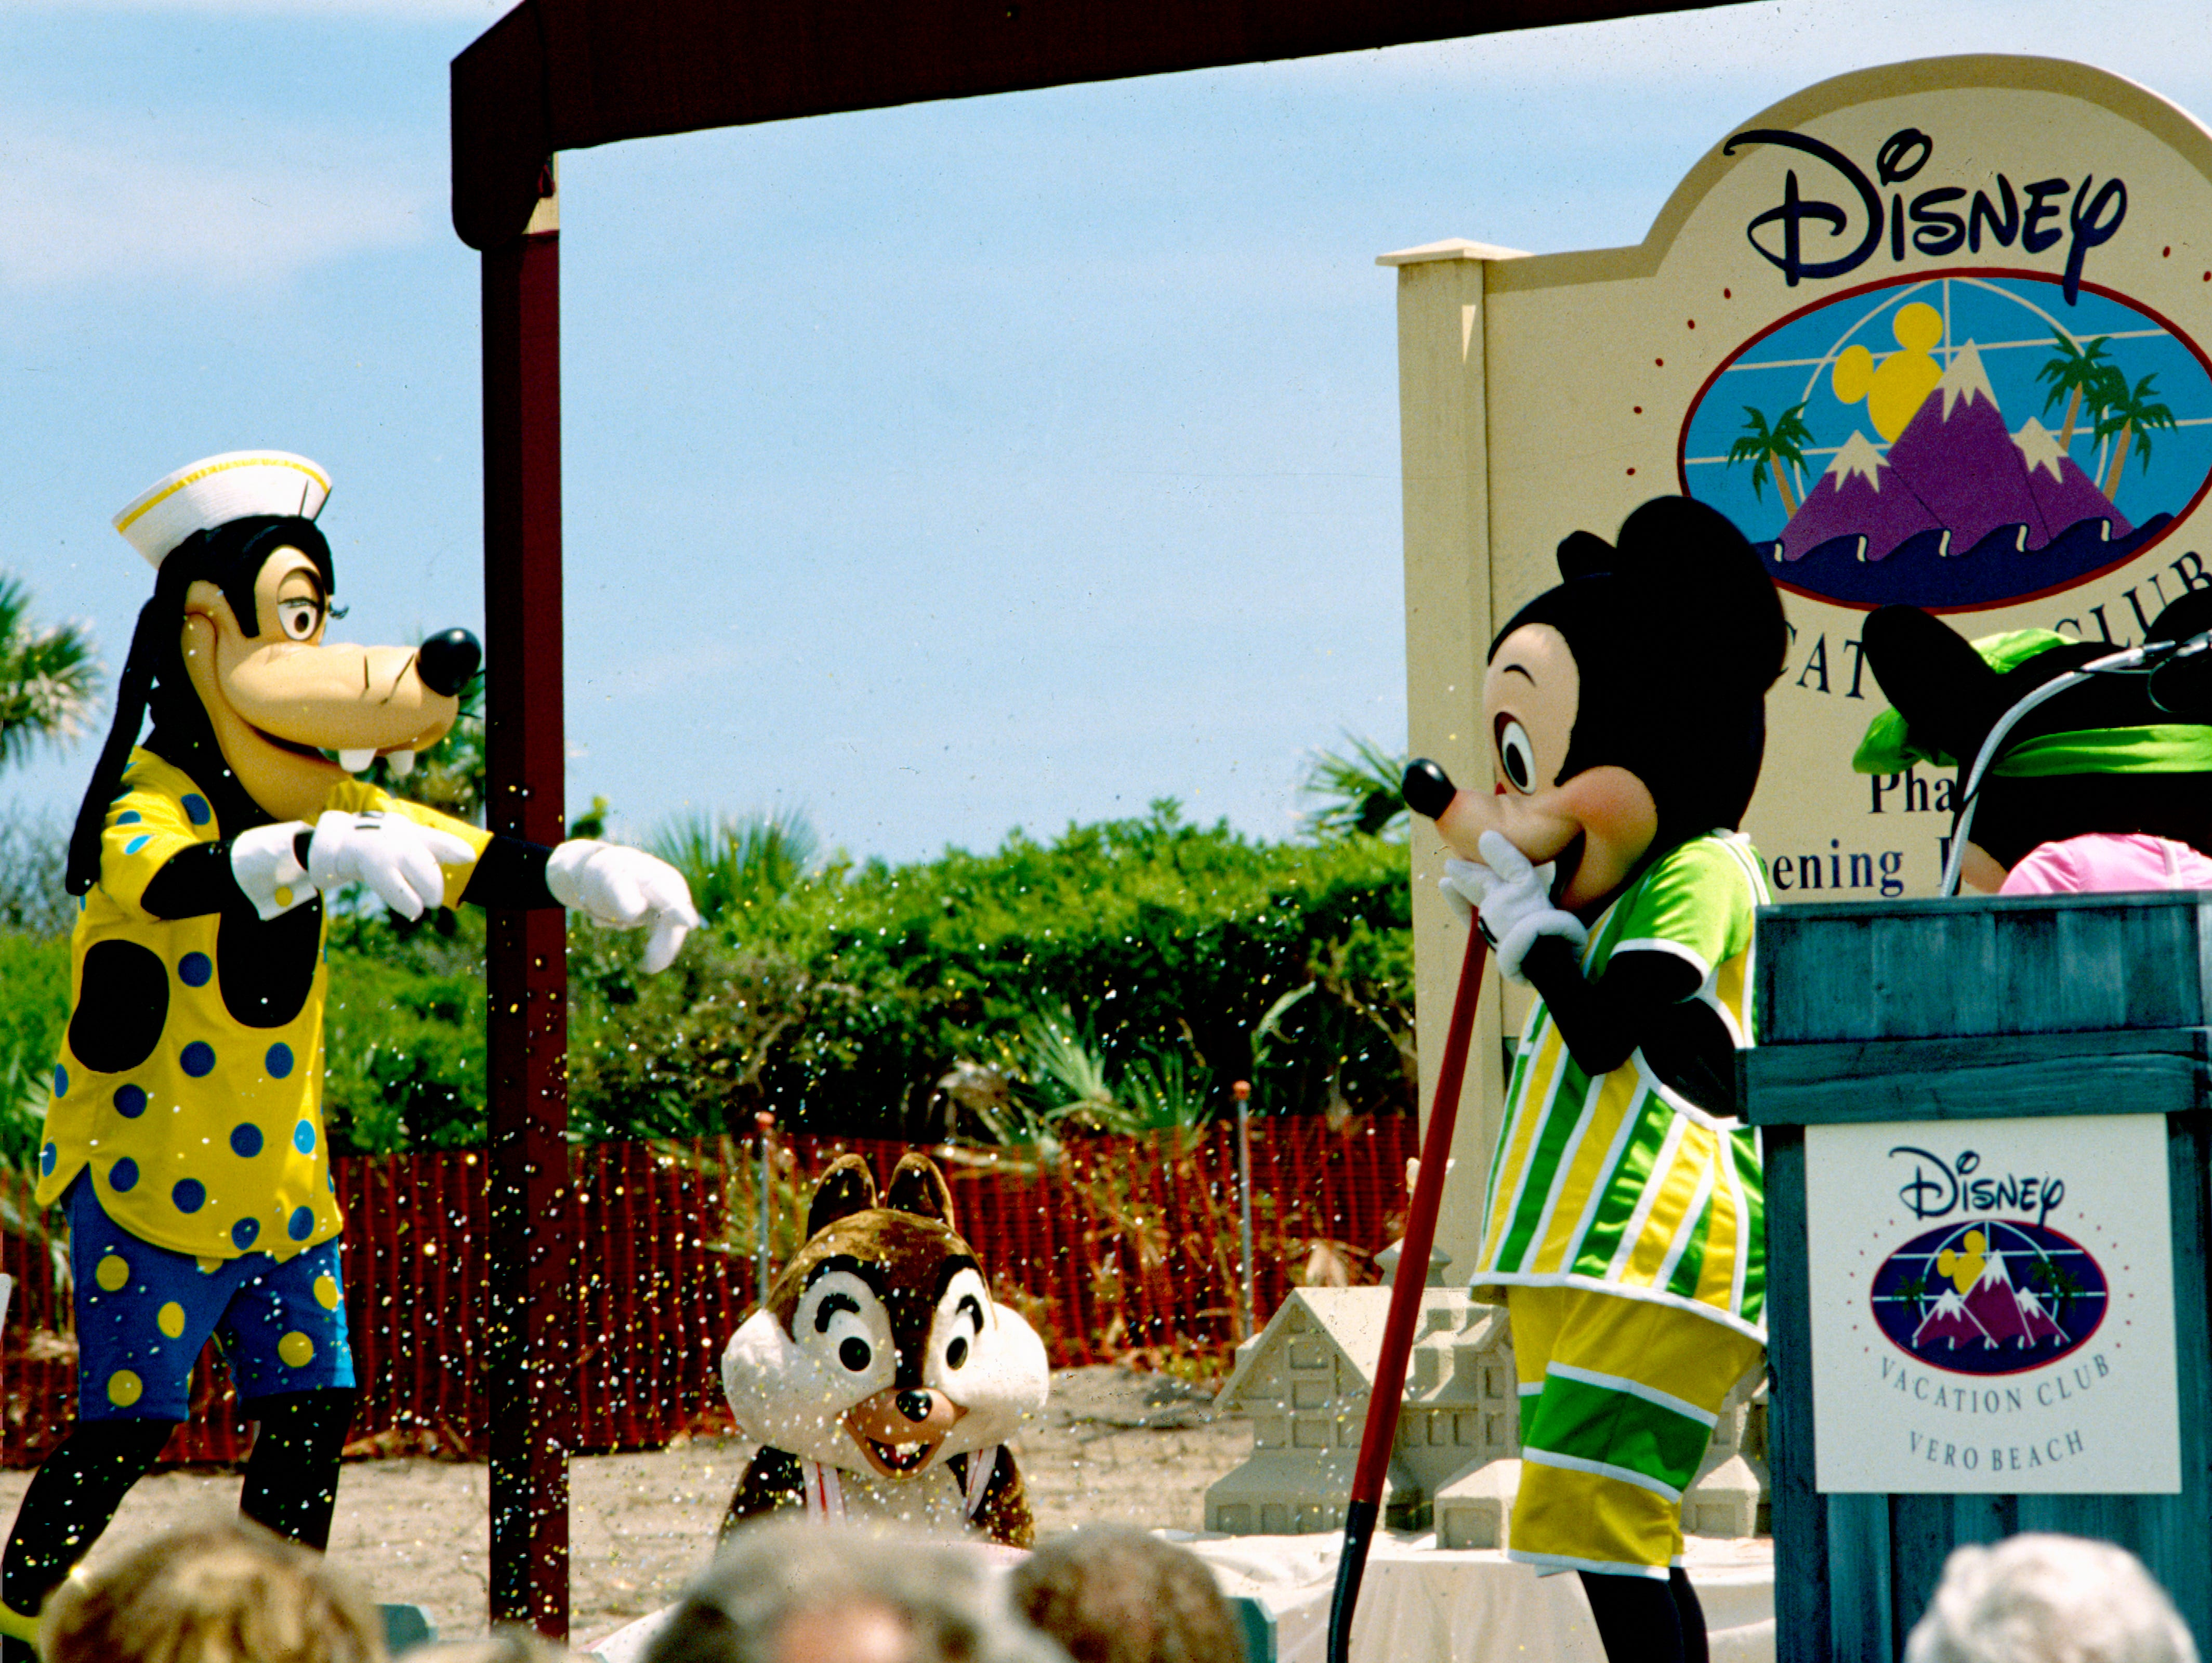 July 28, 1994 - Goofy, Mickey and Minnie sprinkle pixie dust in the air and unveil a sand castle replica of Disney's new resort during the groundbreaking ceremony at the site along State Road A1A south of Wabasso Beach. The construction marked the first time that Disney had expanded its resort business beyond the boundaries of its theme parks.